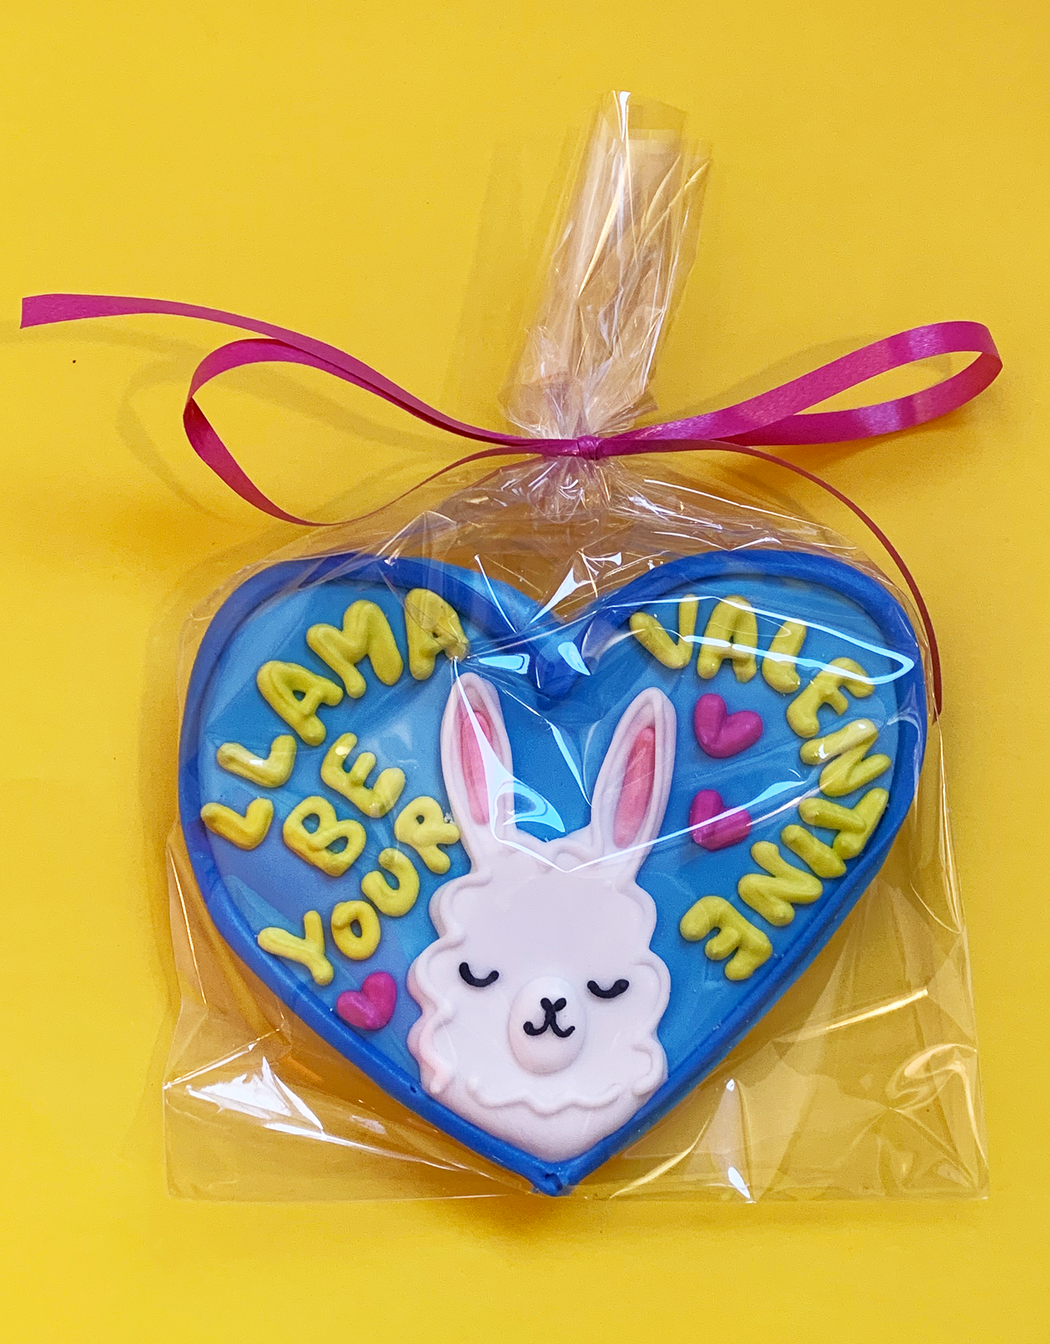 "Lindsay Gazel V-day 2021 ""Llama be your Valentine"" heart shaped cookie. Available at Easy Tiger Toronto."